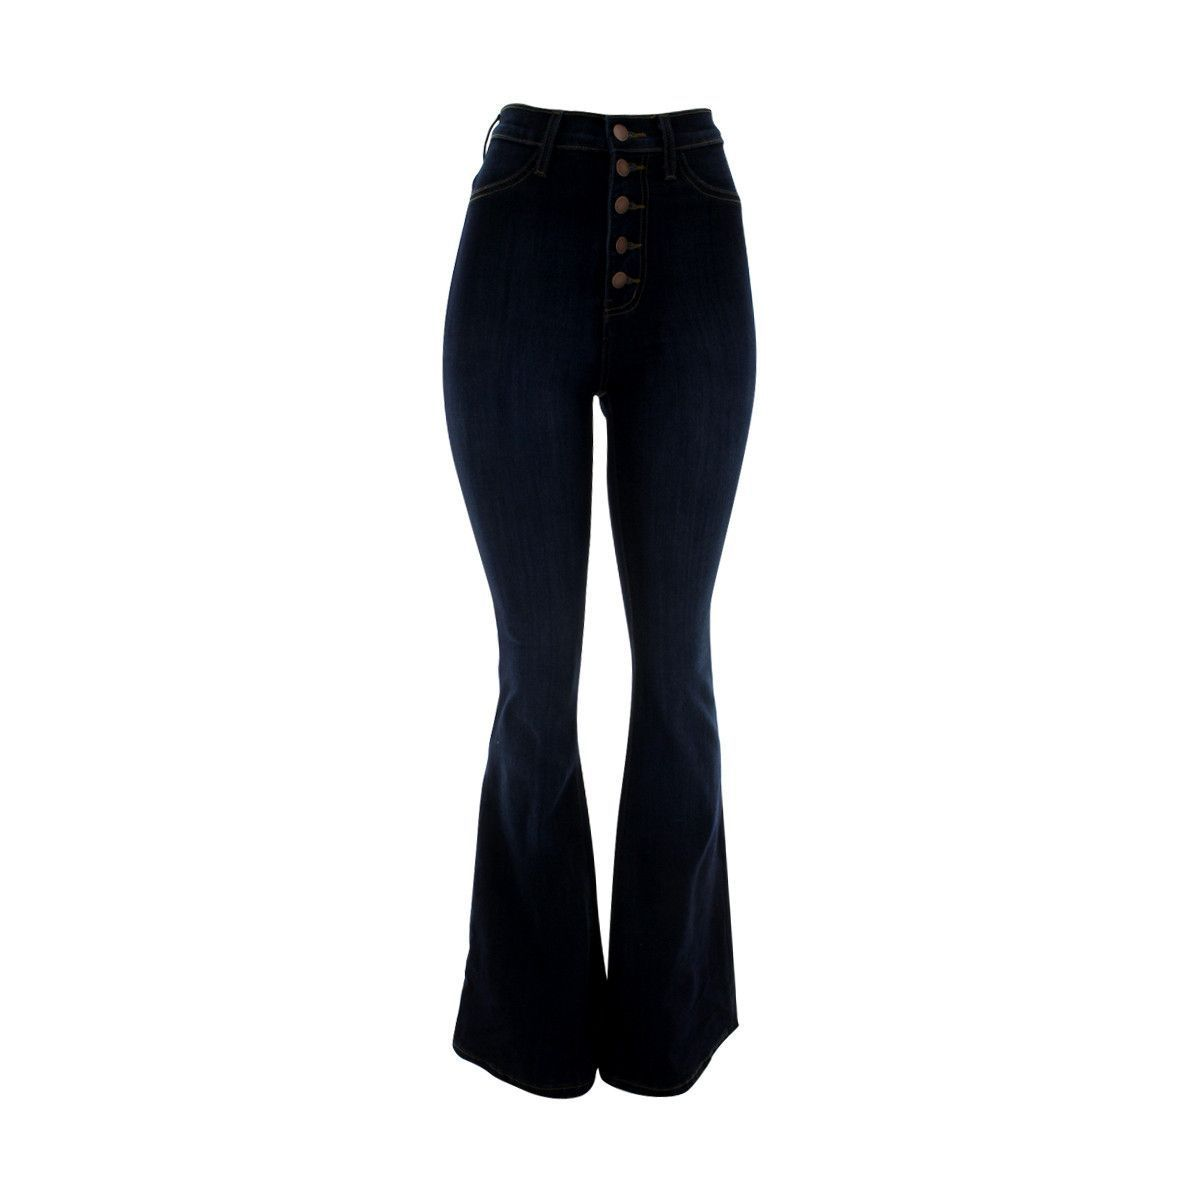 Pin By Julio Cesar On Pantalones Bell Bottom Jeans Jeans Flares